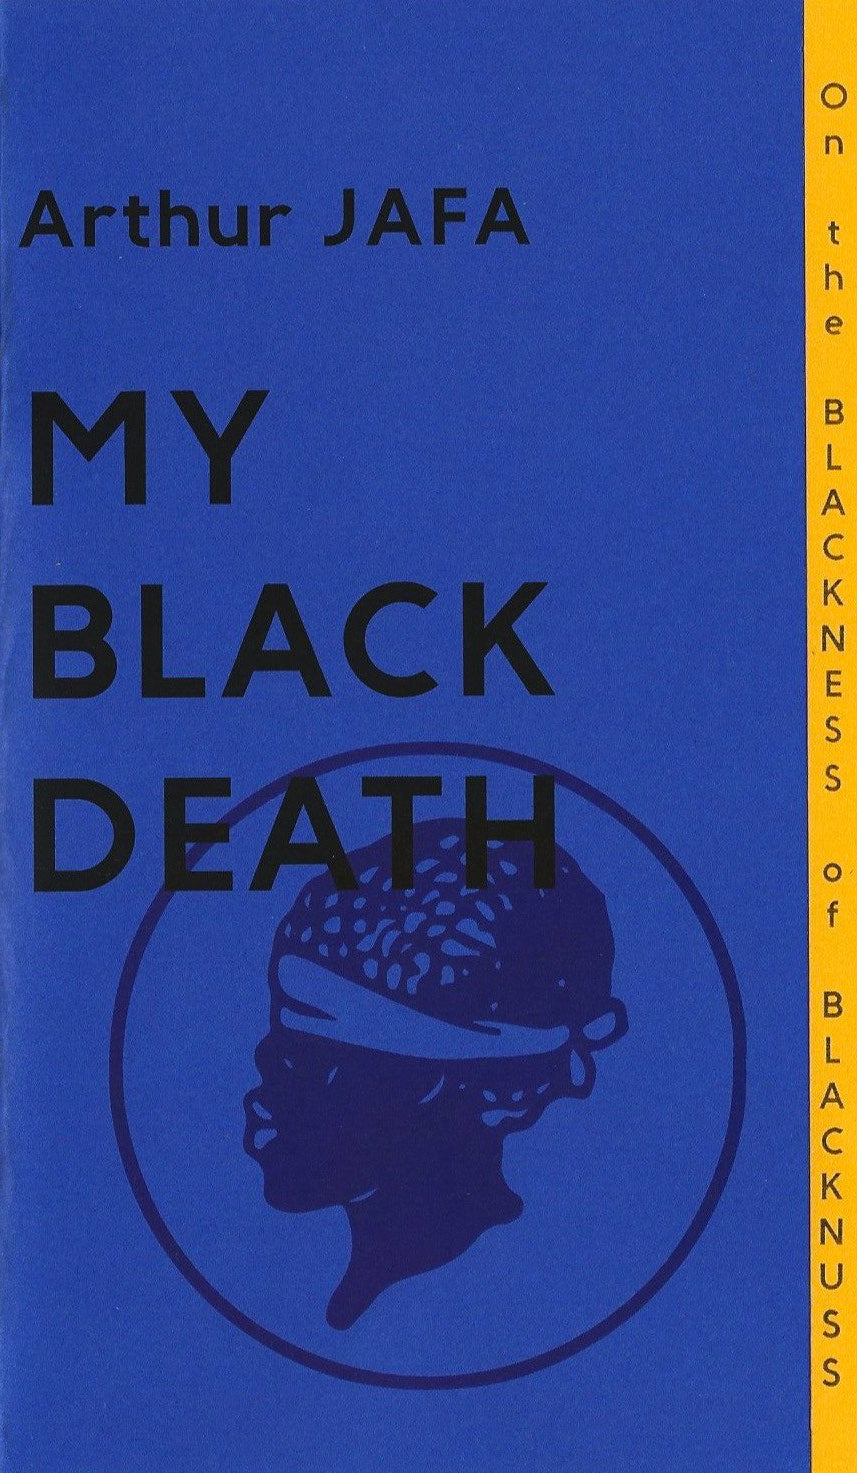 My Black Death by Arthur Jafa